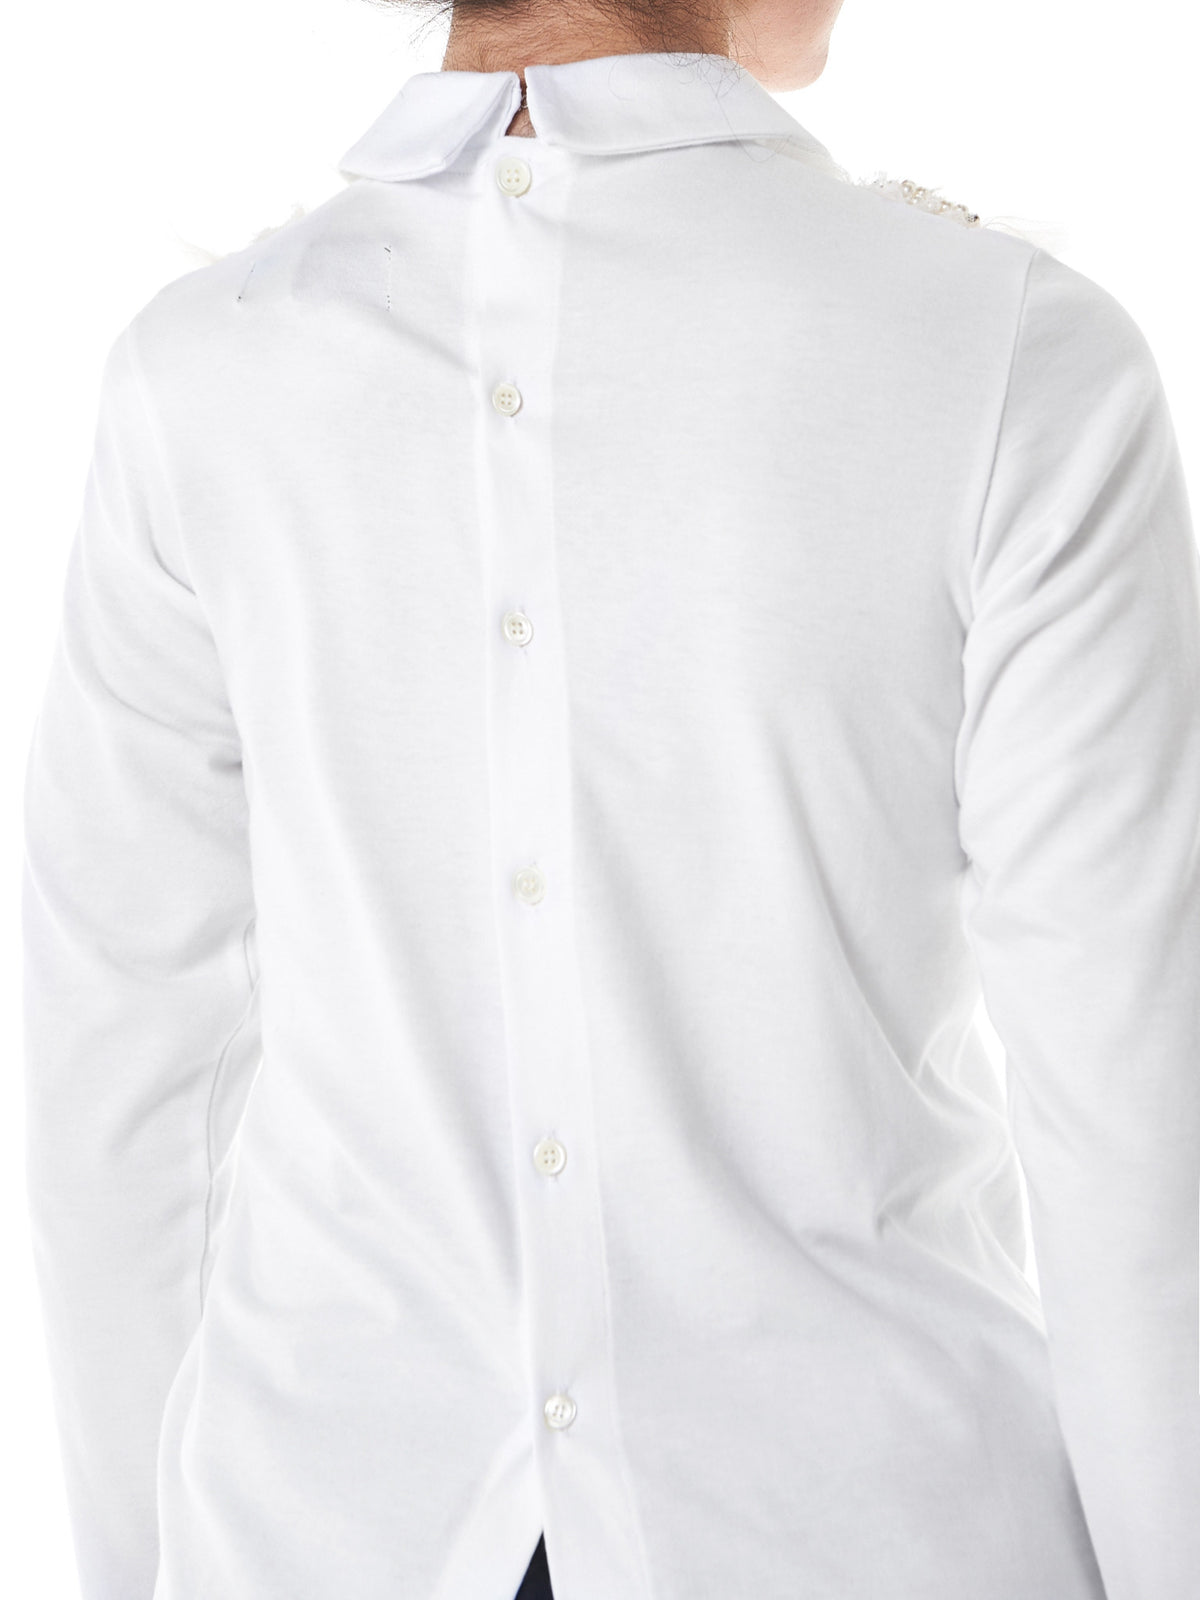 Corsage Long-Sleeve Button-Down (TS-T204-051-3) - H. Lorenzo